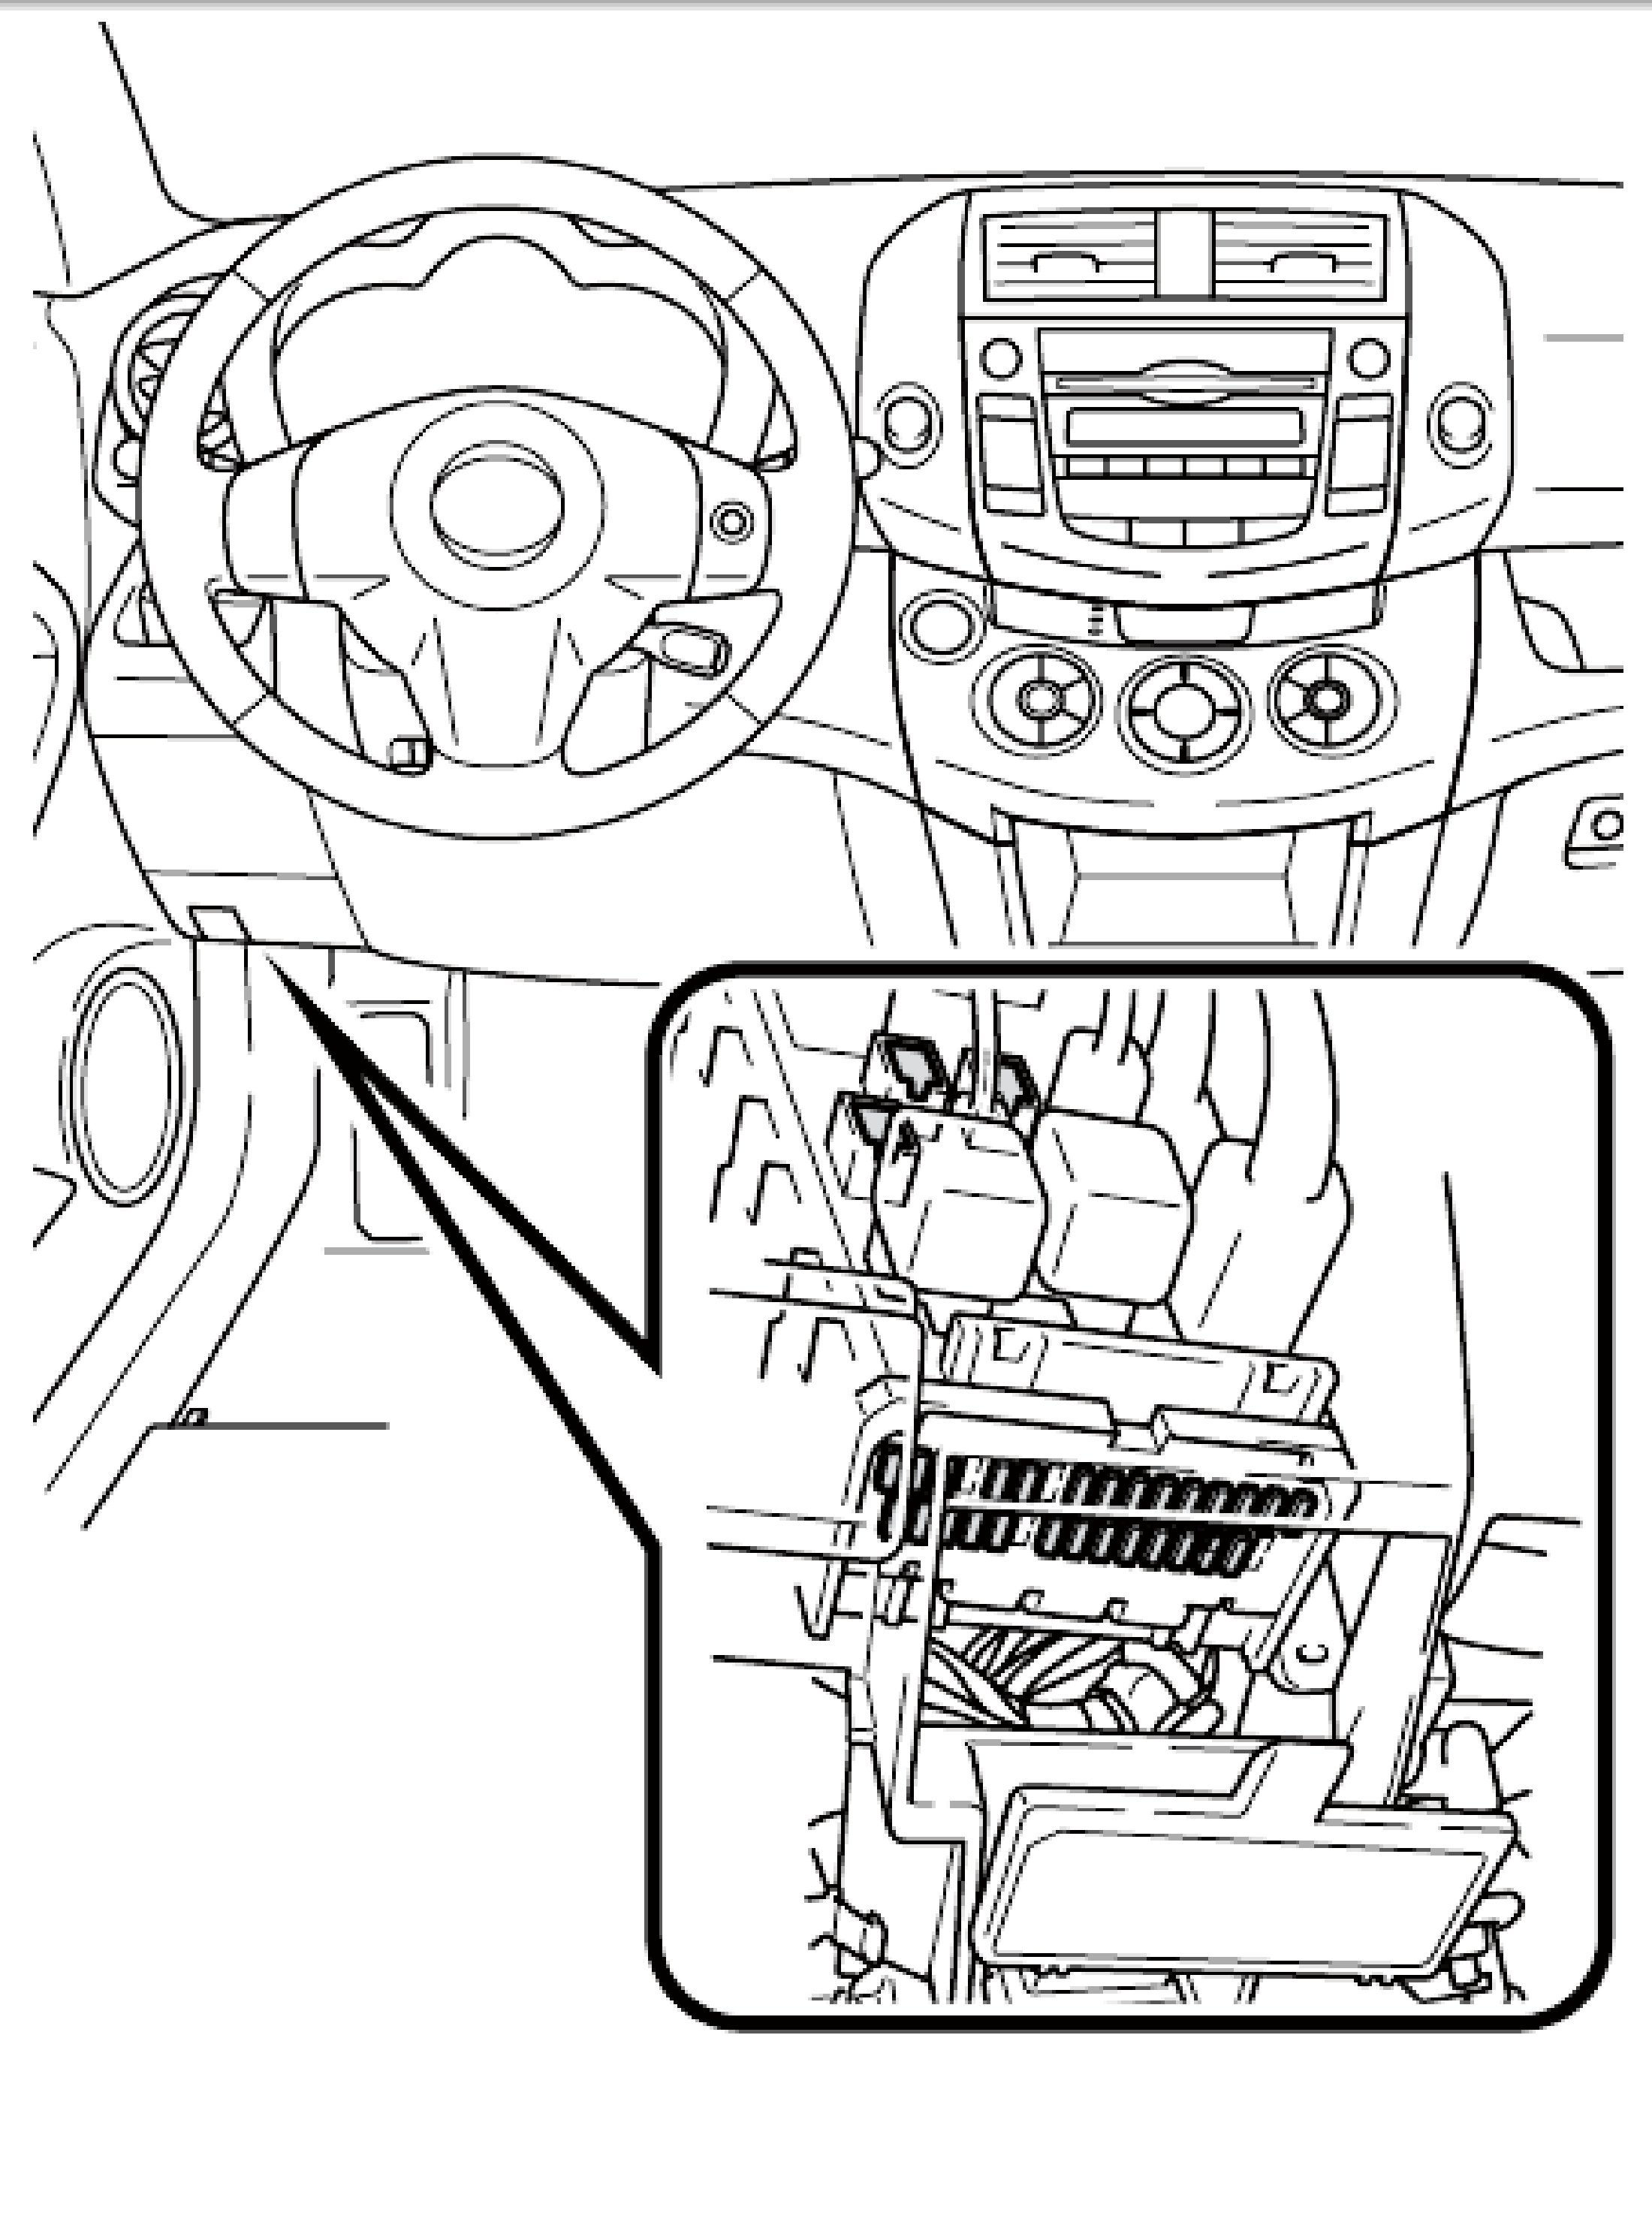 Toyotum Tacoma Transmission Electrical Wiring Diagram